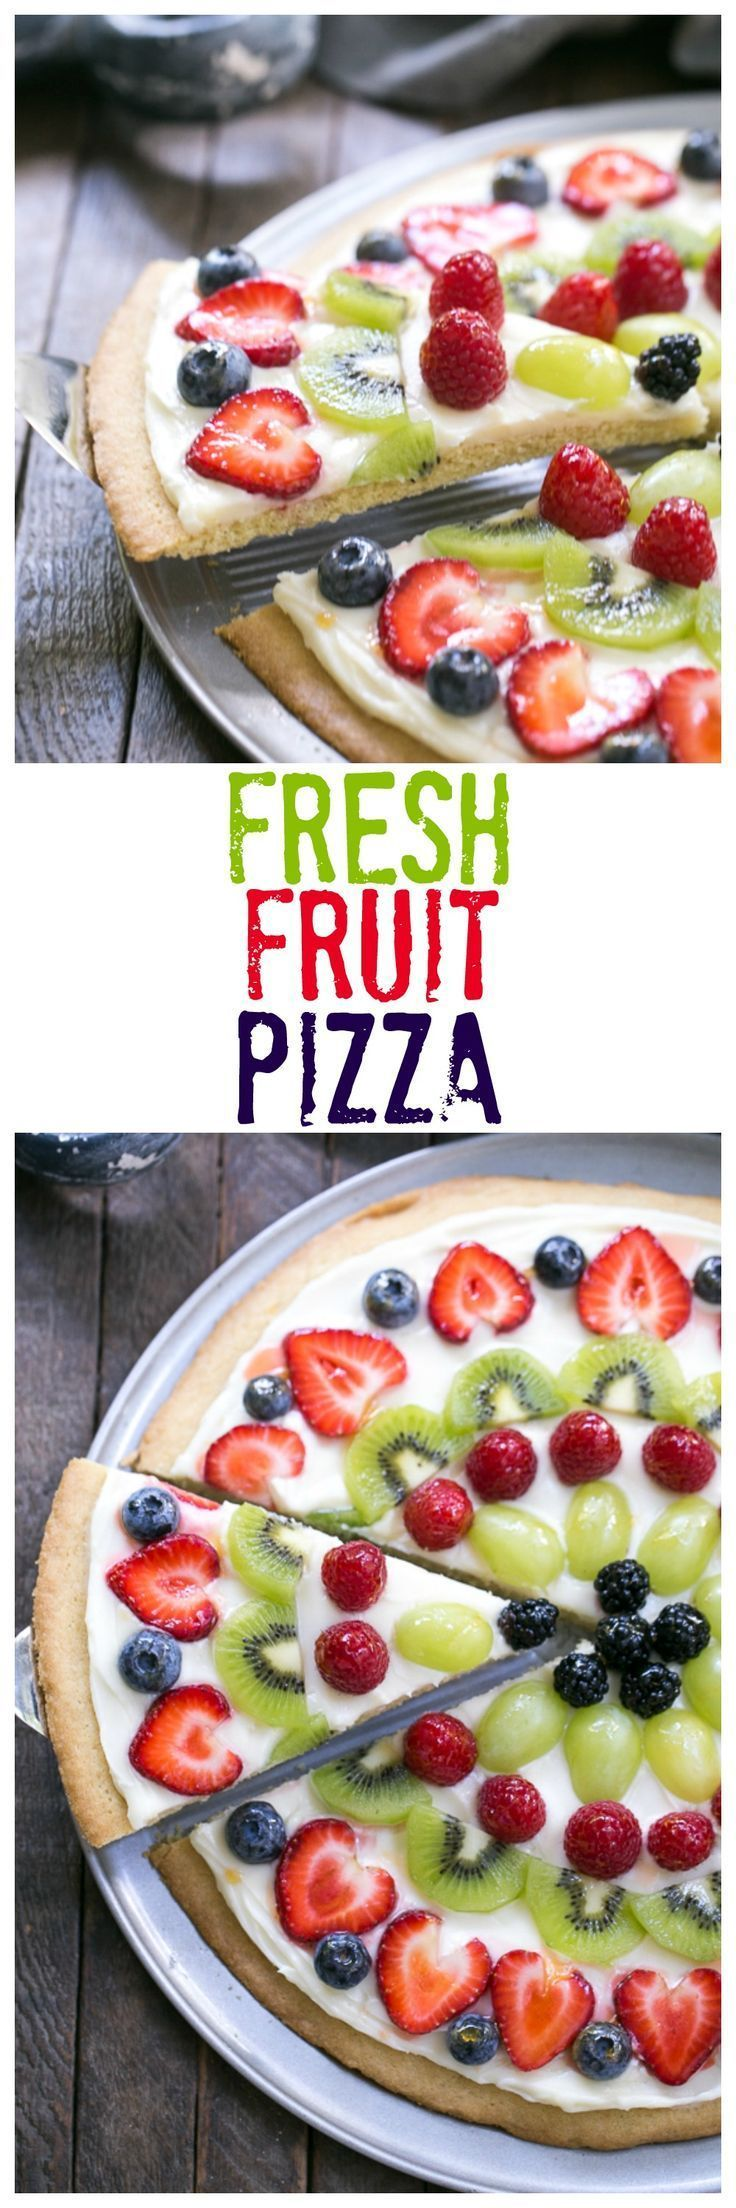 Fresh Fruit Pizza   A vibrant, delicious dessert pizza with a sugar cookie crust and cream cheese frosting! /lizzydo/